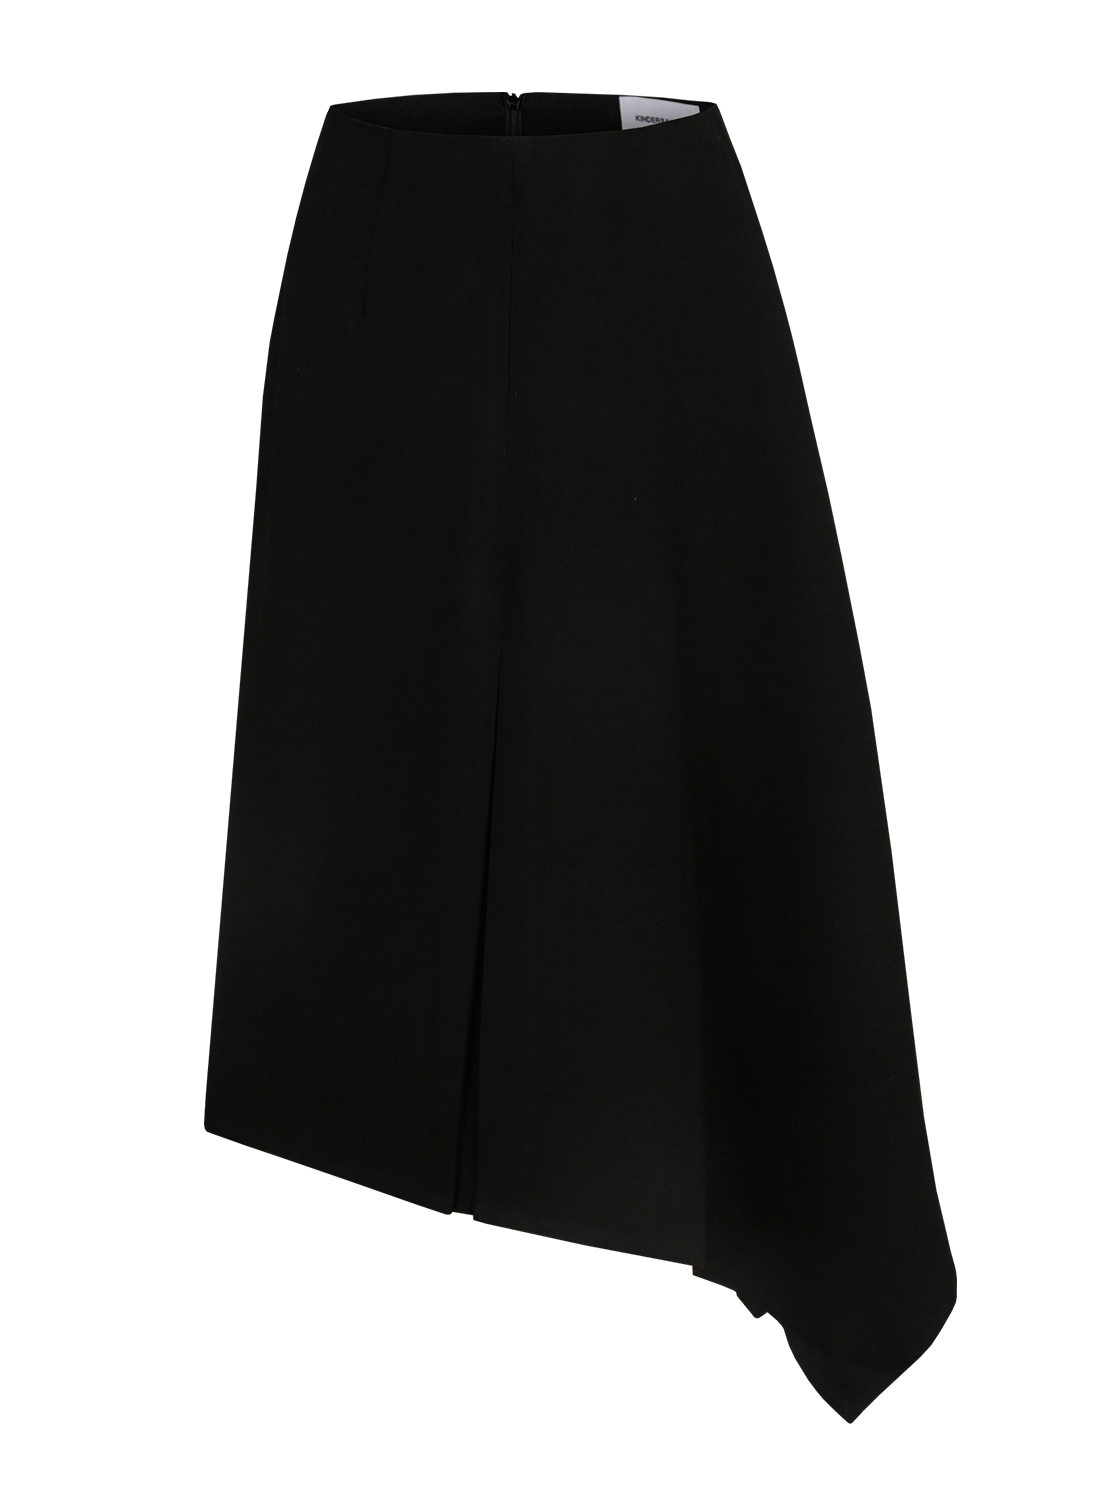 FW17 ASYMMETRY SKIRT BLACK